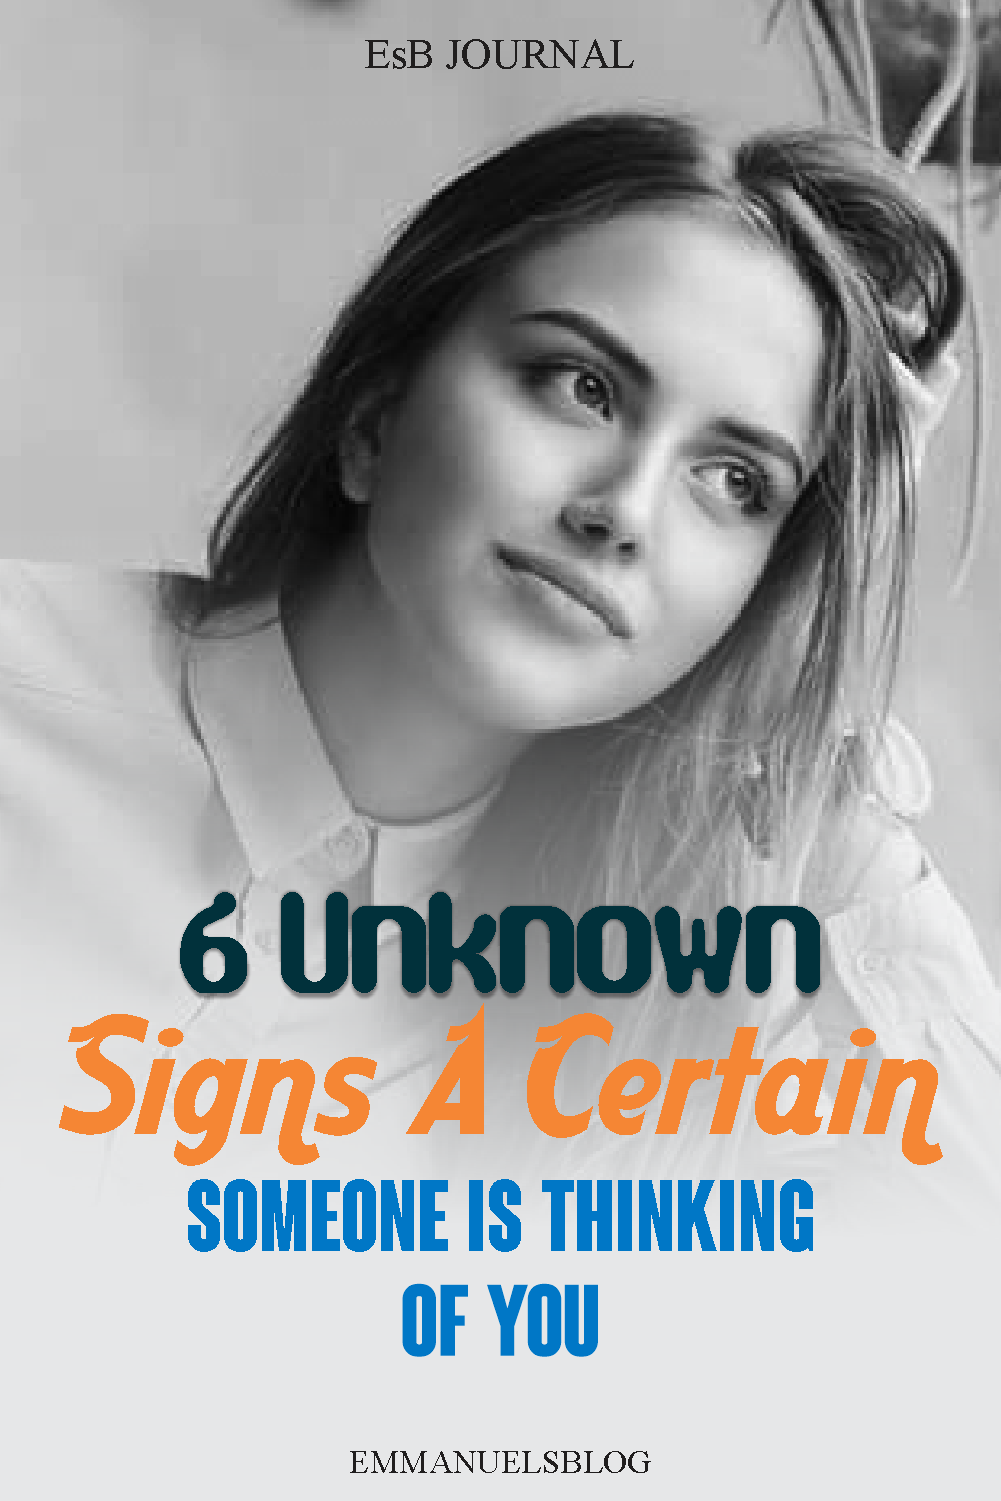 6 Unknown Signs A Certain Someone Is Thinking of You